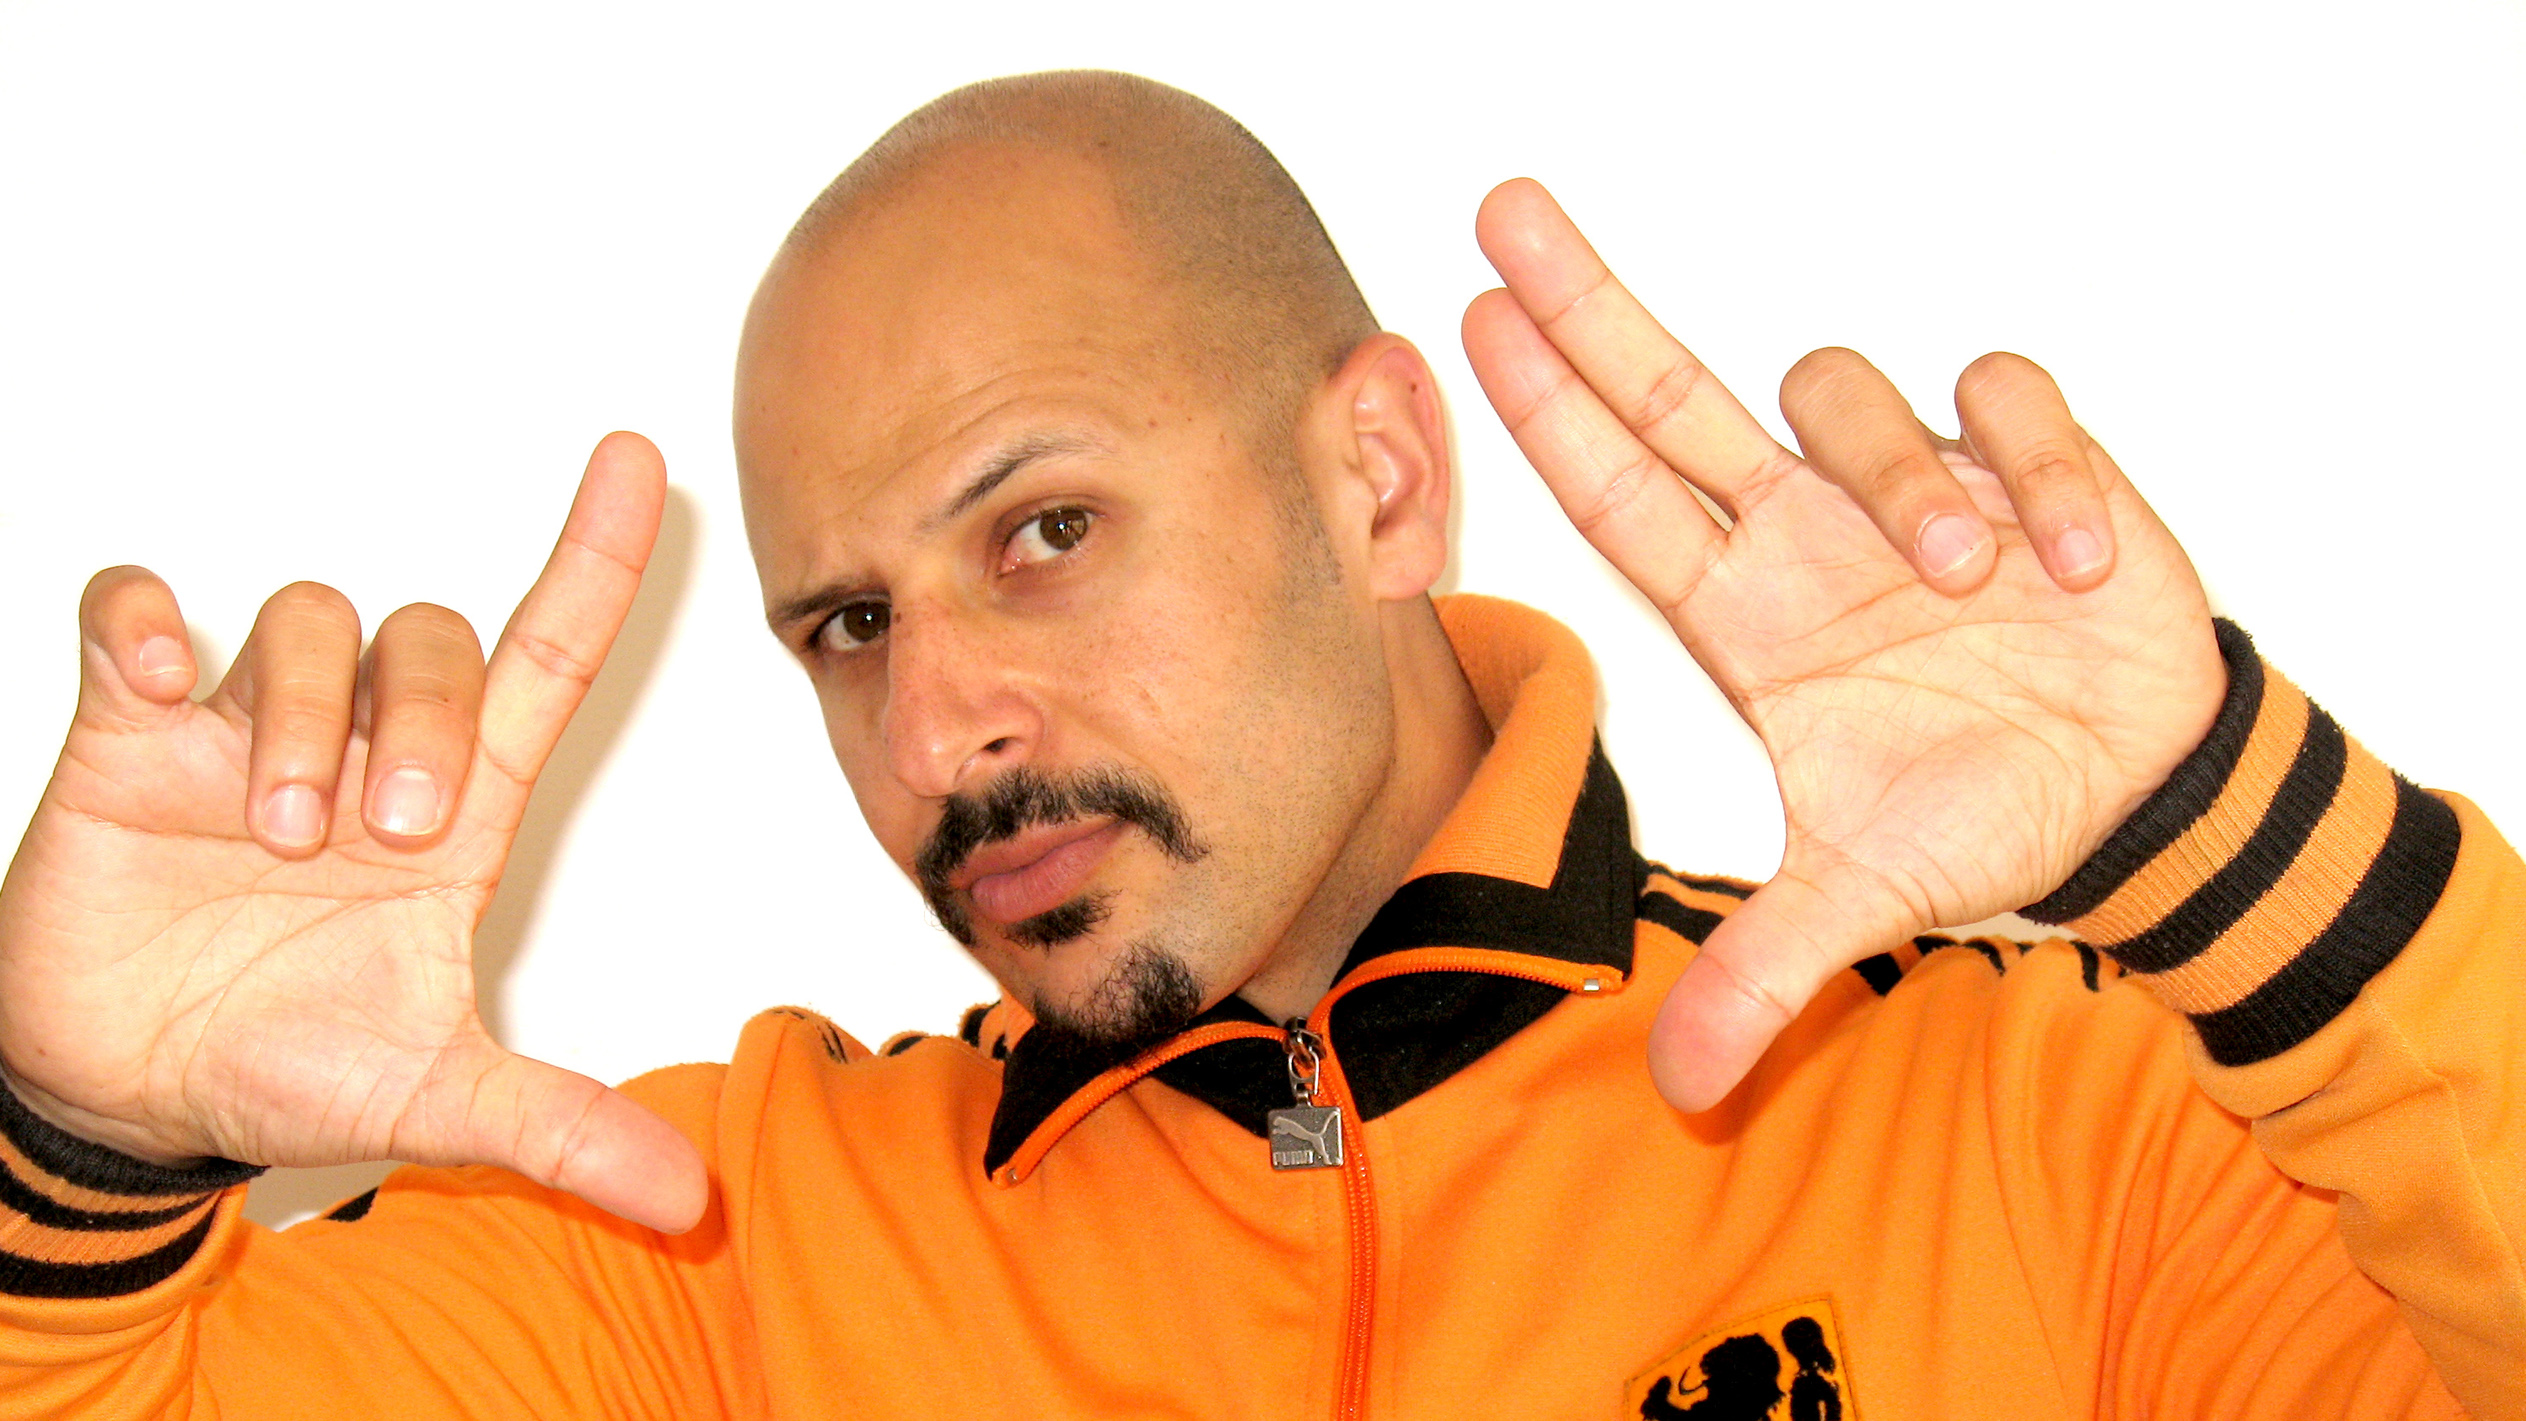 Comedian Maz Jobrani was born in Iran and grew up in Los Angeles. He says the attack on the satirical French publication Charlie Hebdo was an attack on all satirists.